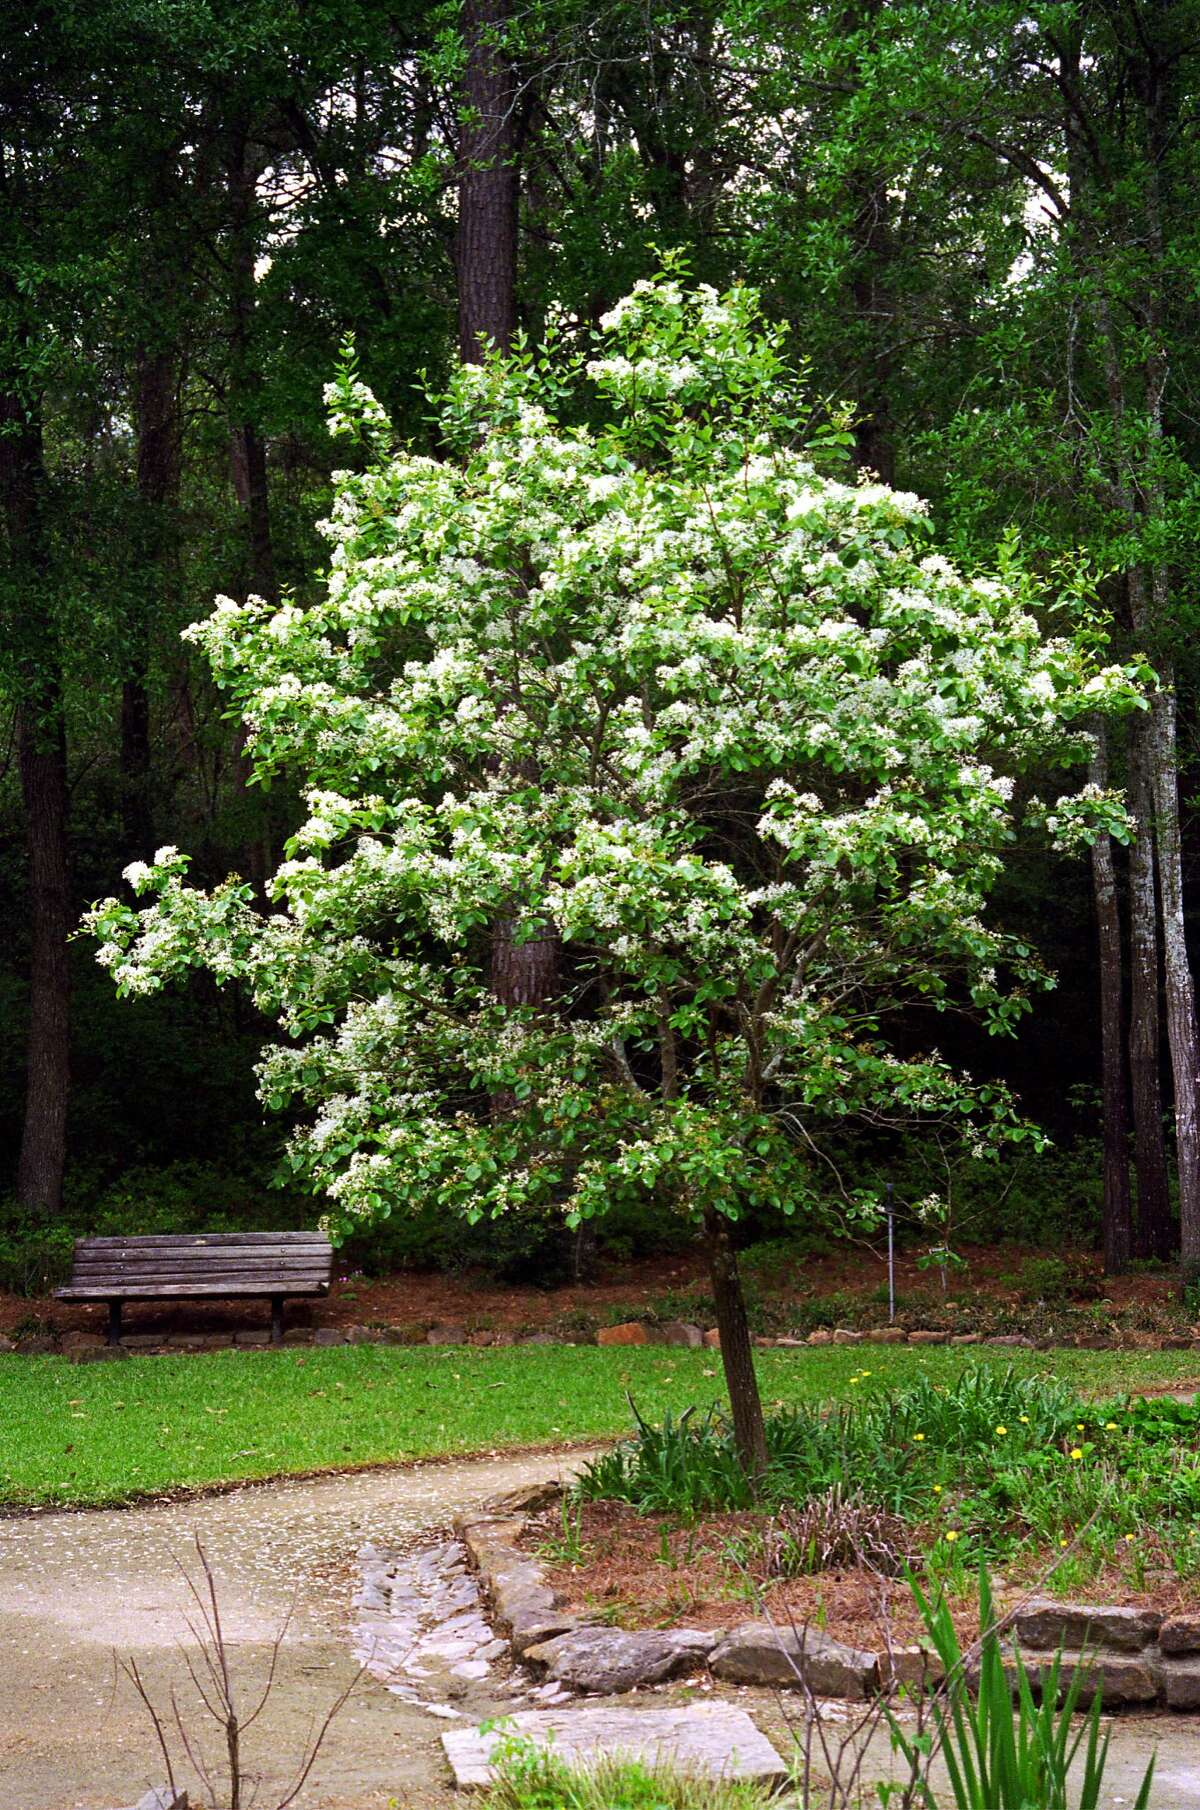 Chinese Fringe Tree at the Mercer Arboretum. 03/24/99. HOUCHRON CAPTION (01/18/2003): The Chinese fringe tree is a standout by the patio or in a larger landscape.